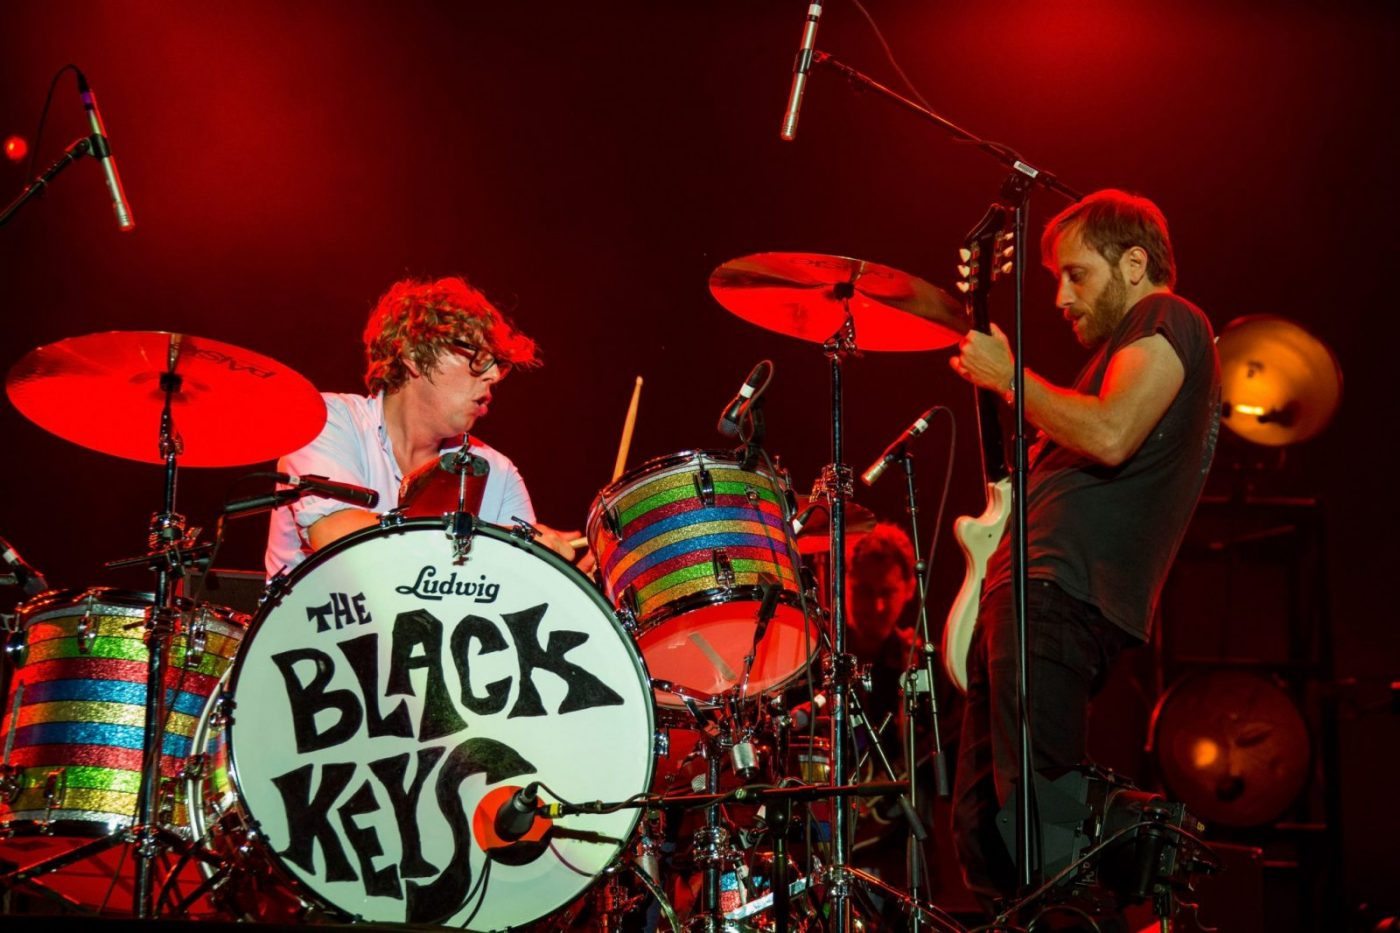 The Black Keys – Your Touch